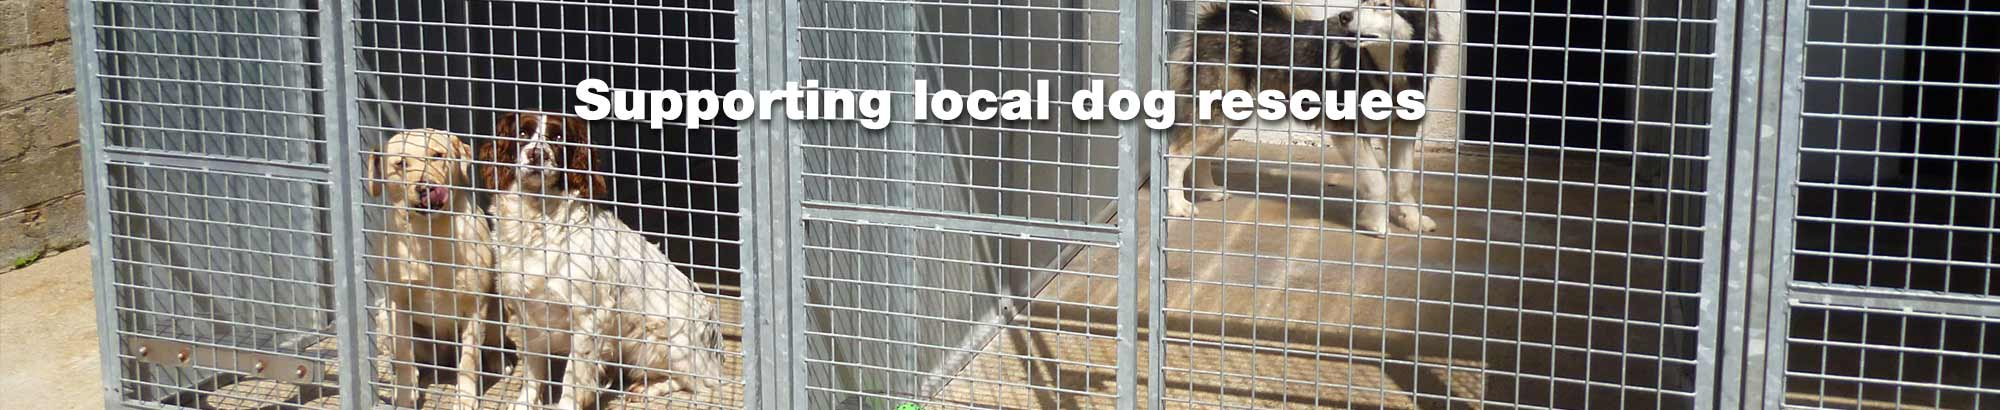 Supporting local dog rescue centres